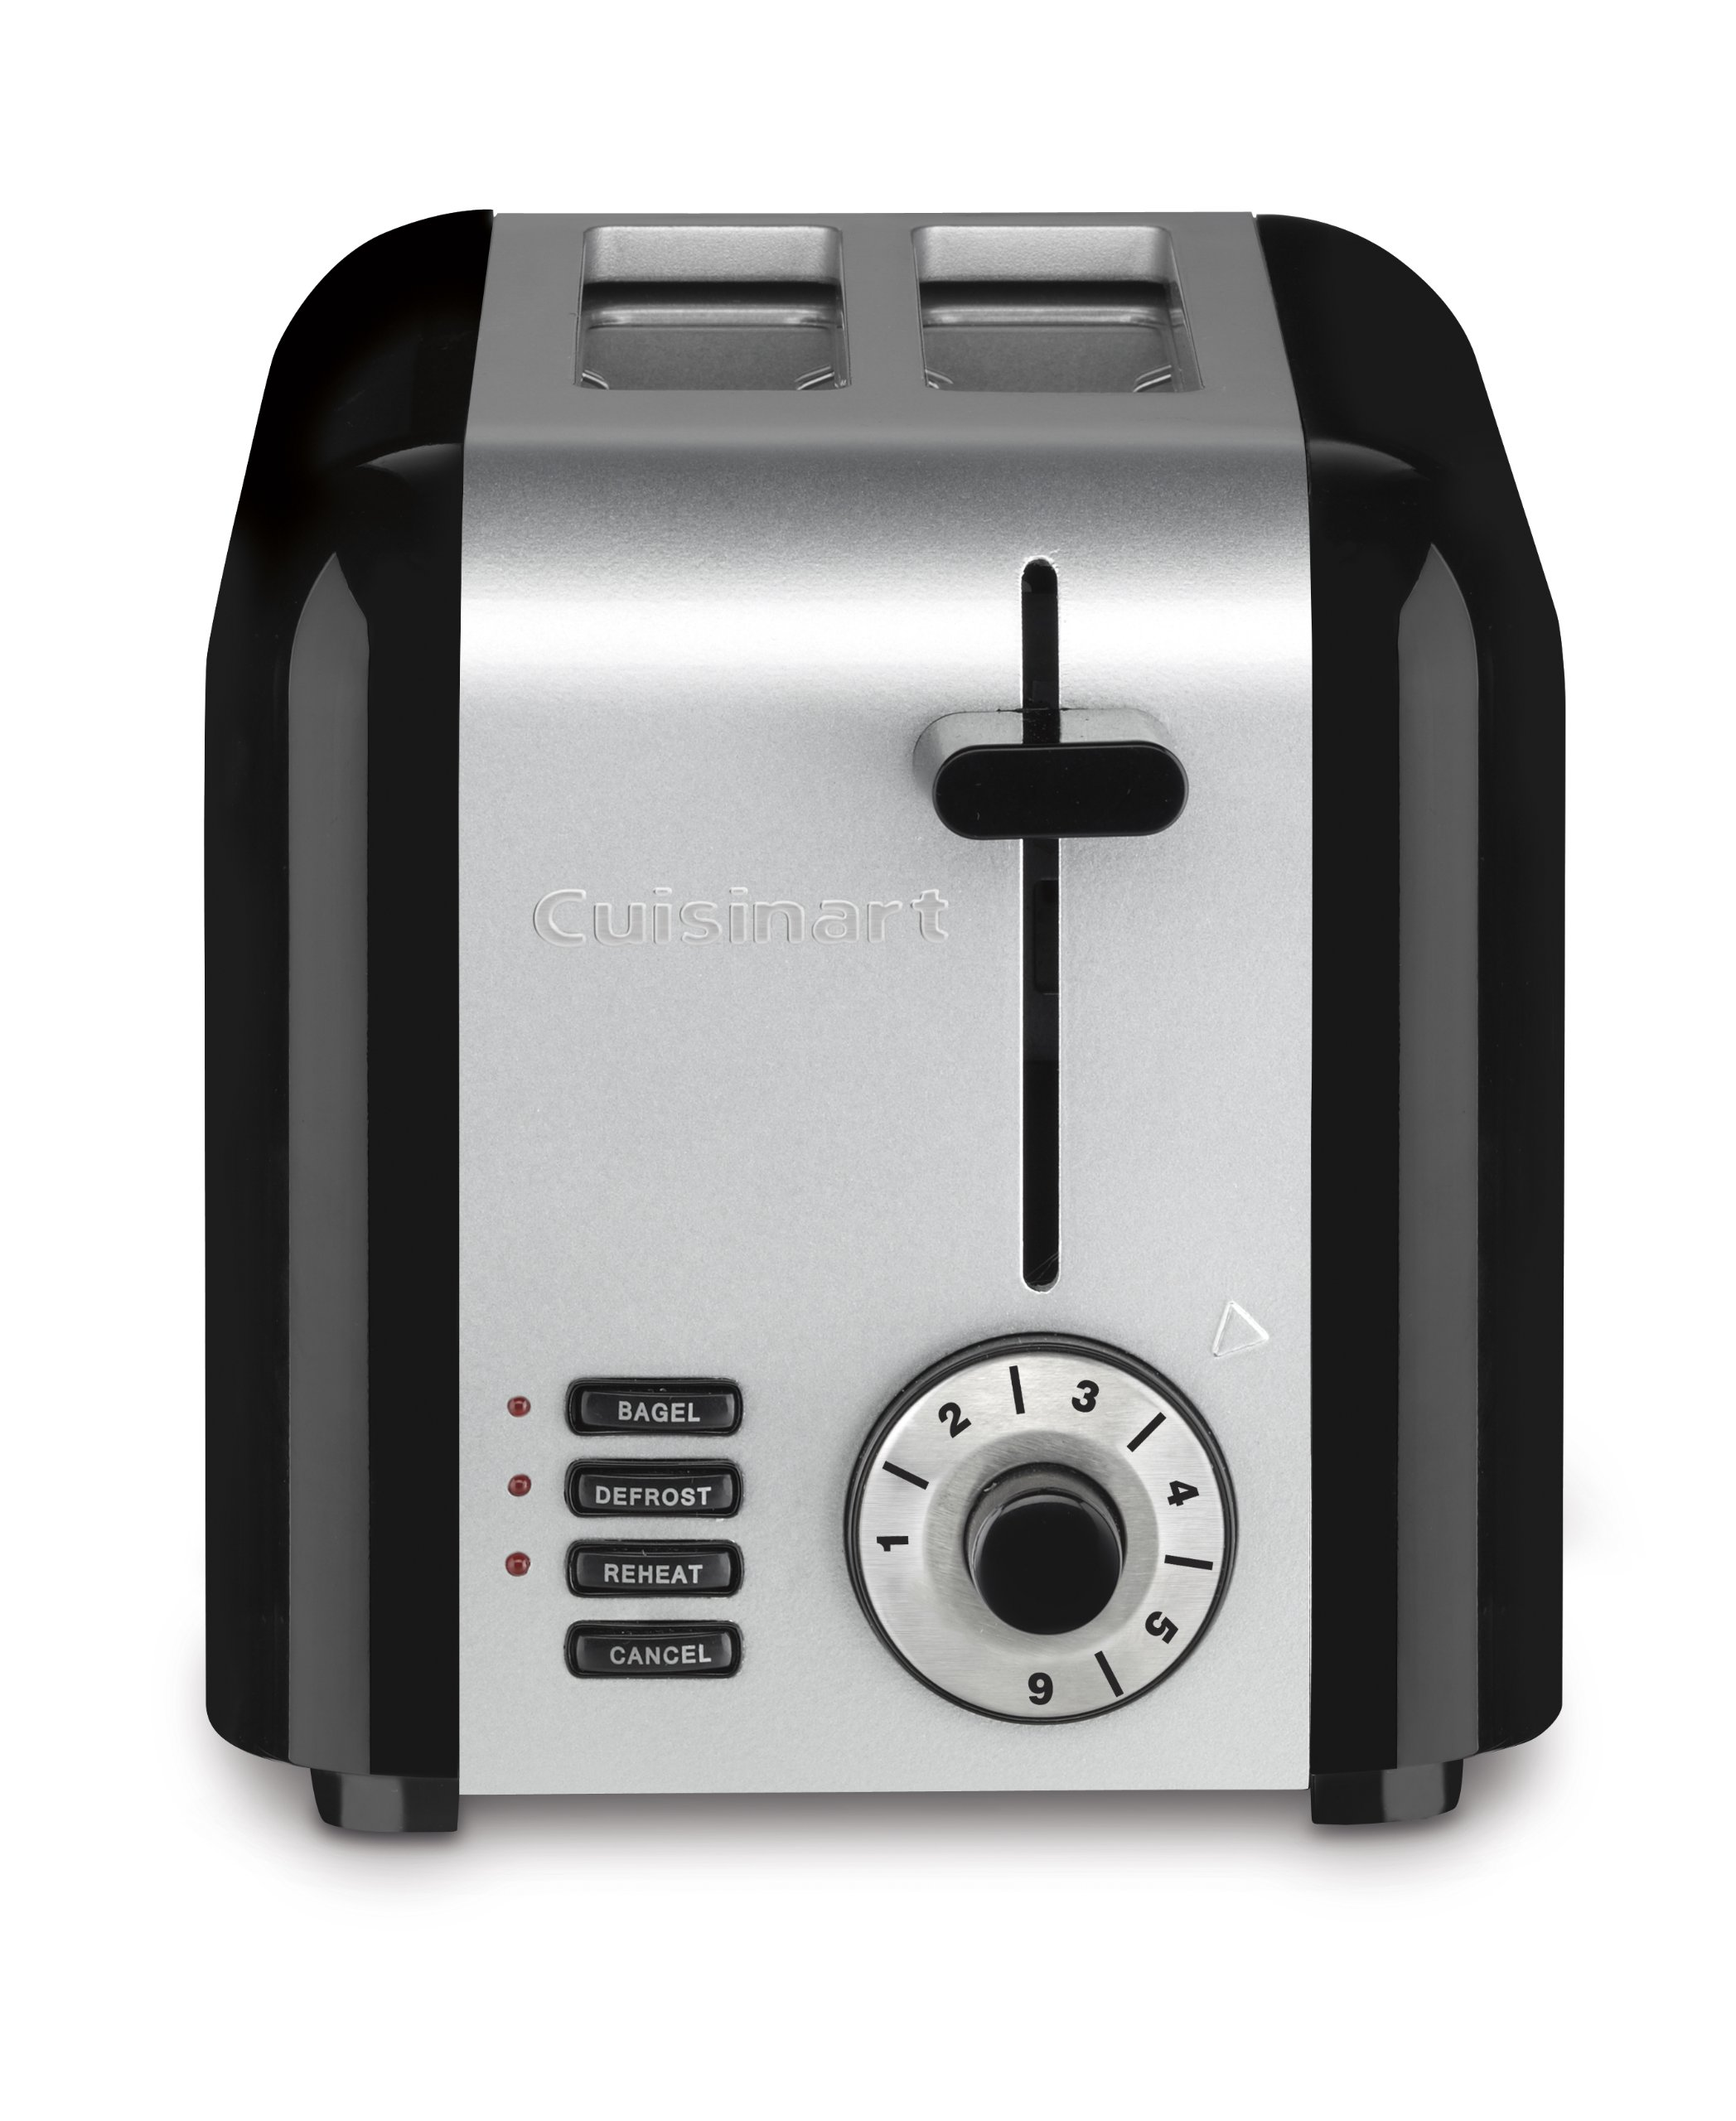 Cuisinart CPT-320 Compact Stainless 2-Slice Toaster, Brushed Stainless by Cuisinart